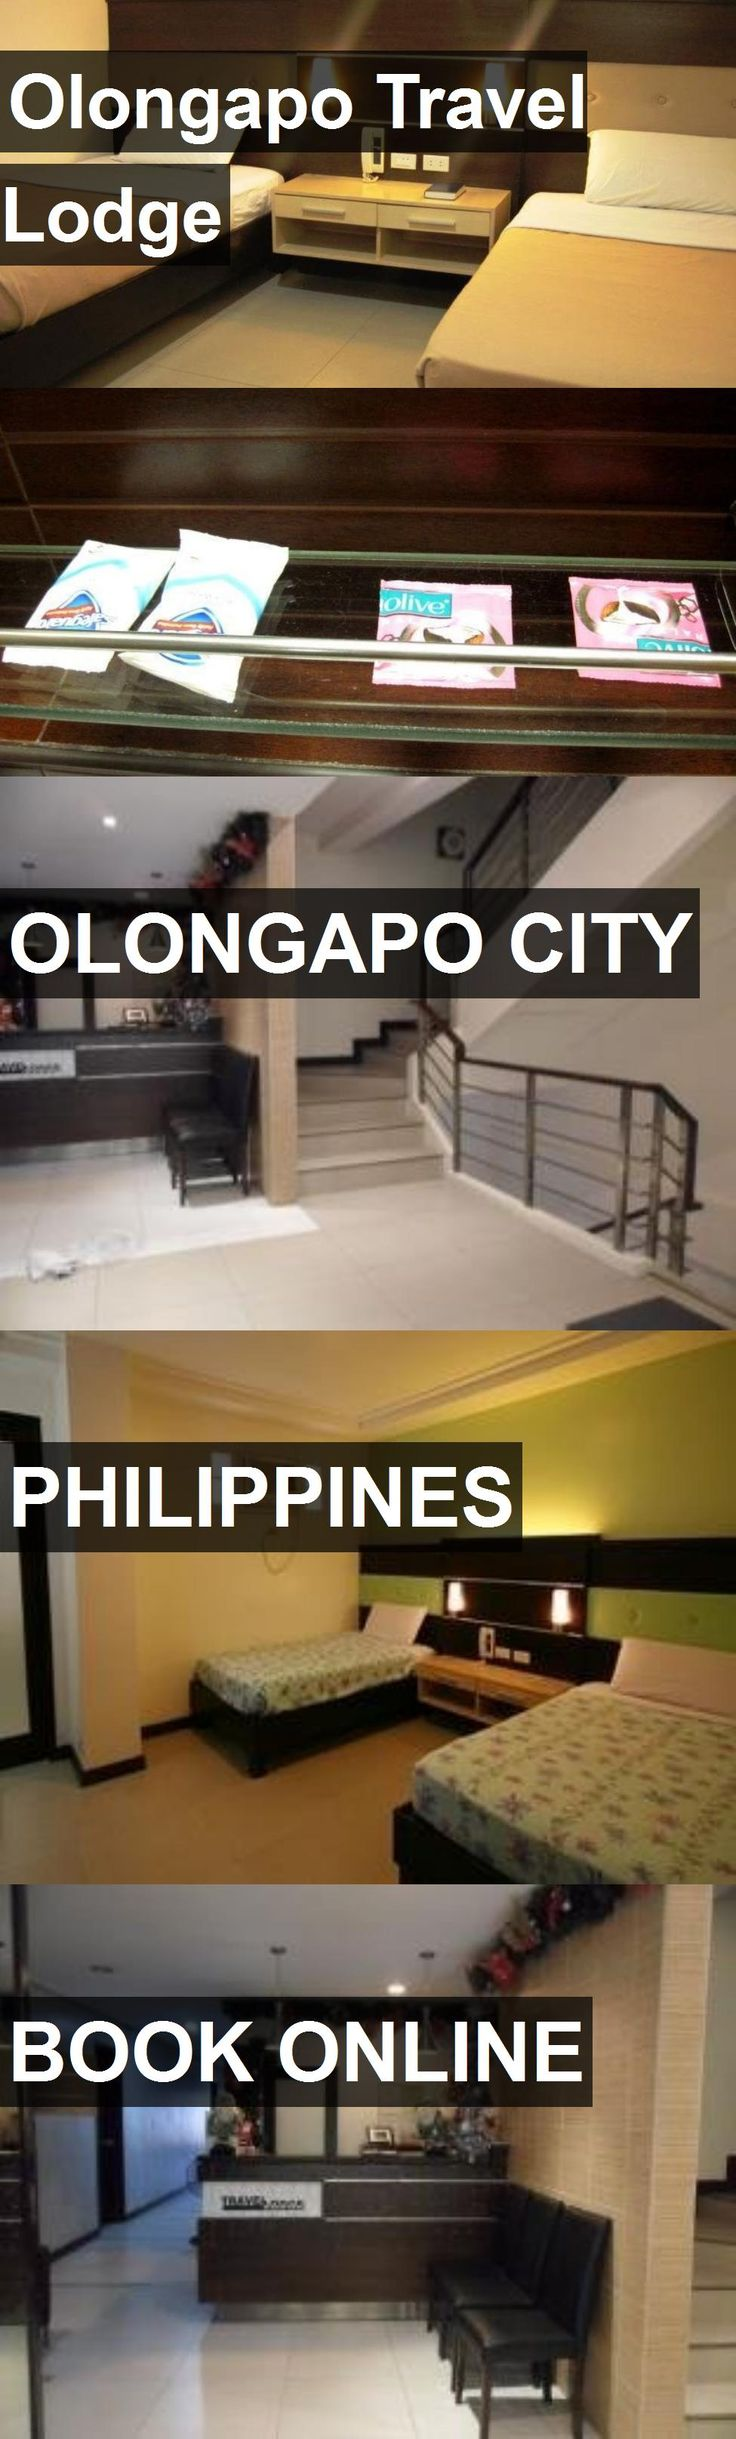 Hotel Olongapo Travel Lodge in Olongapo City, Philippines. For more information, photos, reviews and best prices please follow the link. #Philippines #OlongapoCity #OlongapoTravelLodge #hotel #travel #vacation